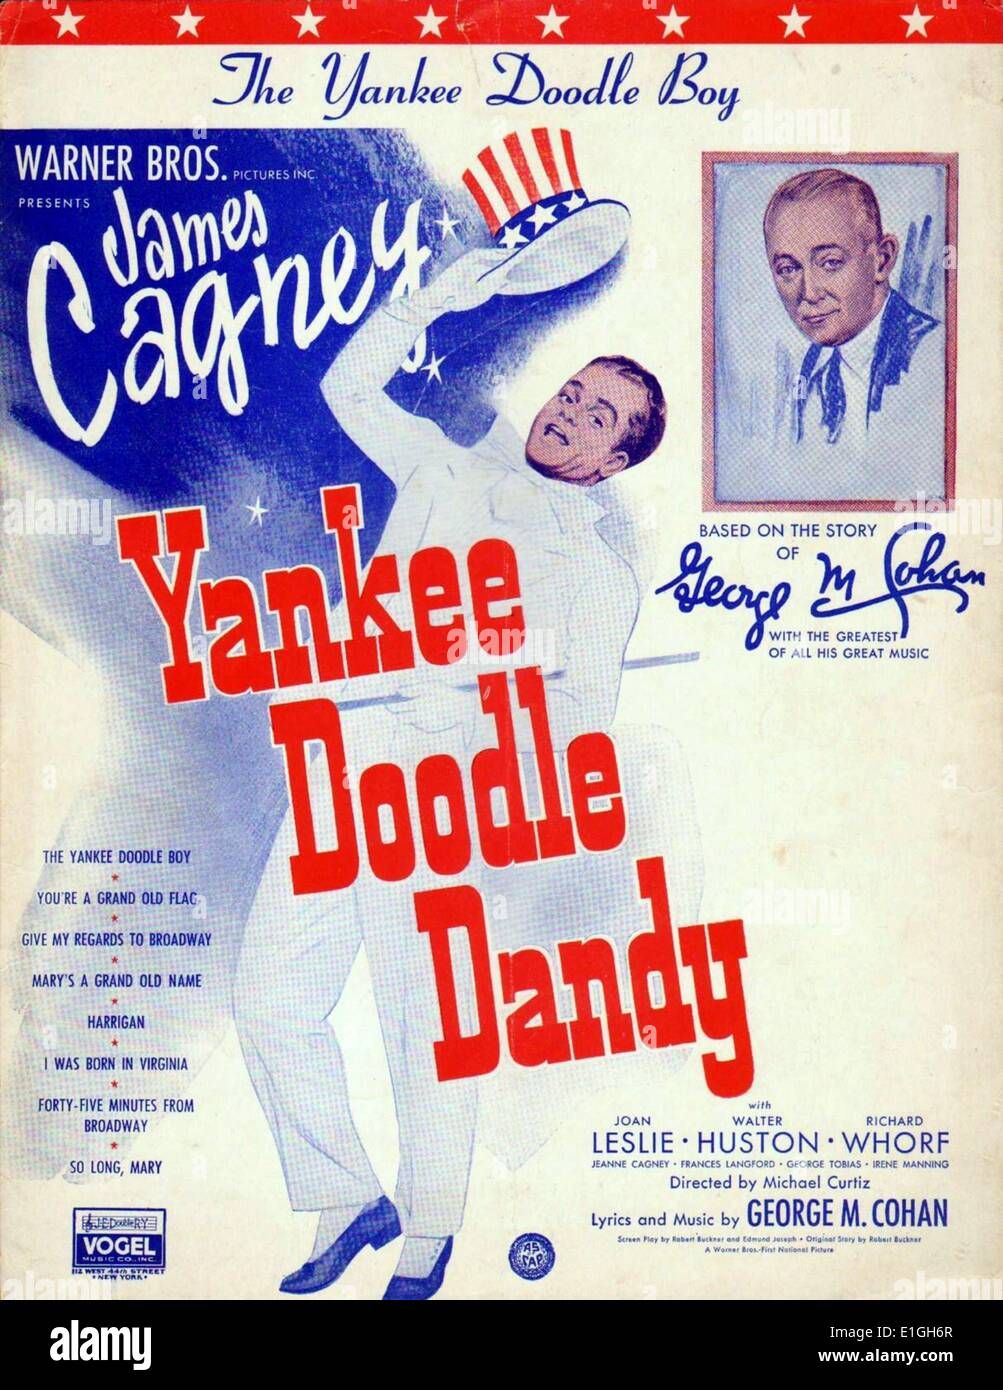 Yankee Doodle Dandy a 1942 American biographical musical film about George M. Cohan, known as 'The Man Who Owned Broadway'. It - Stock Image